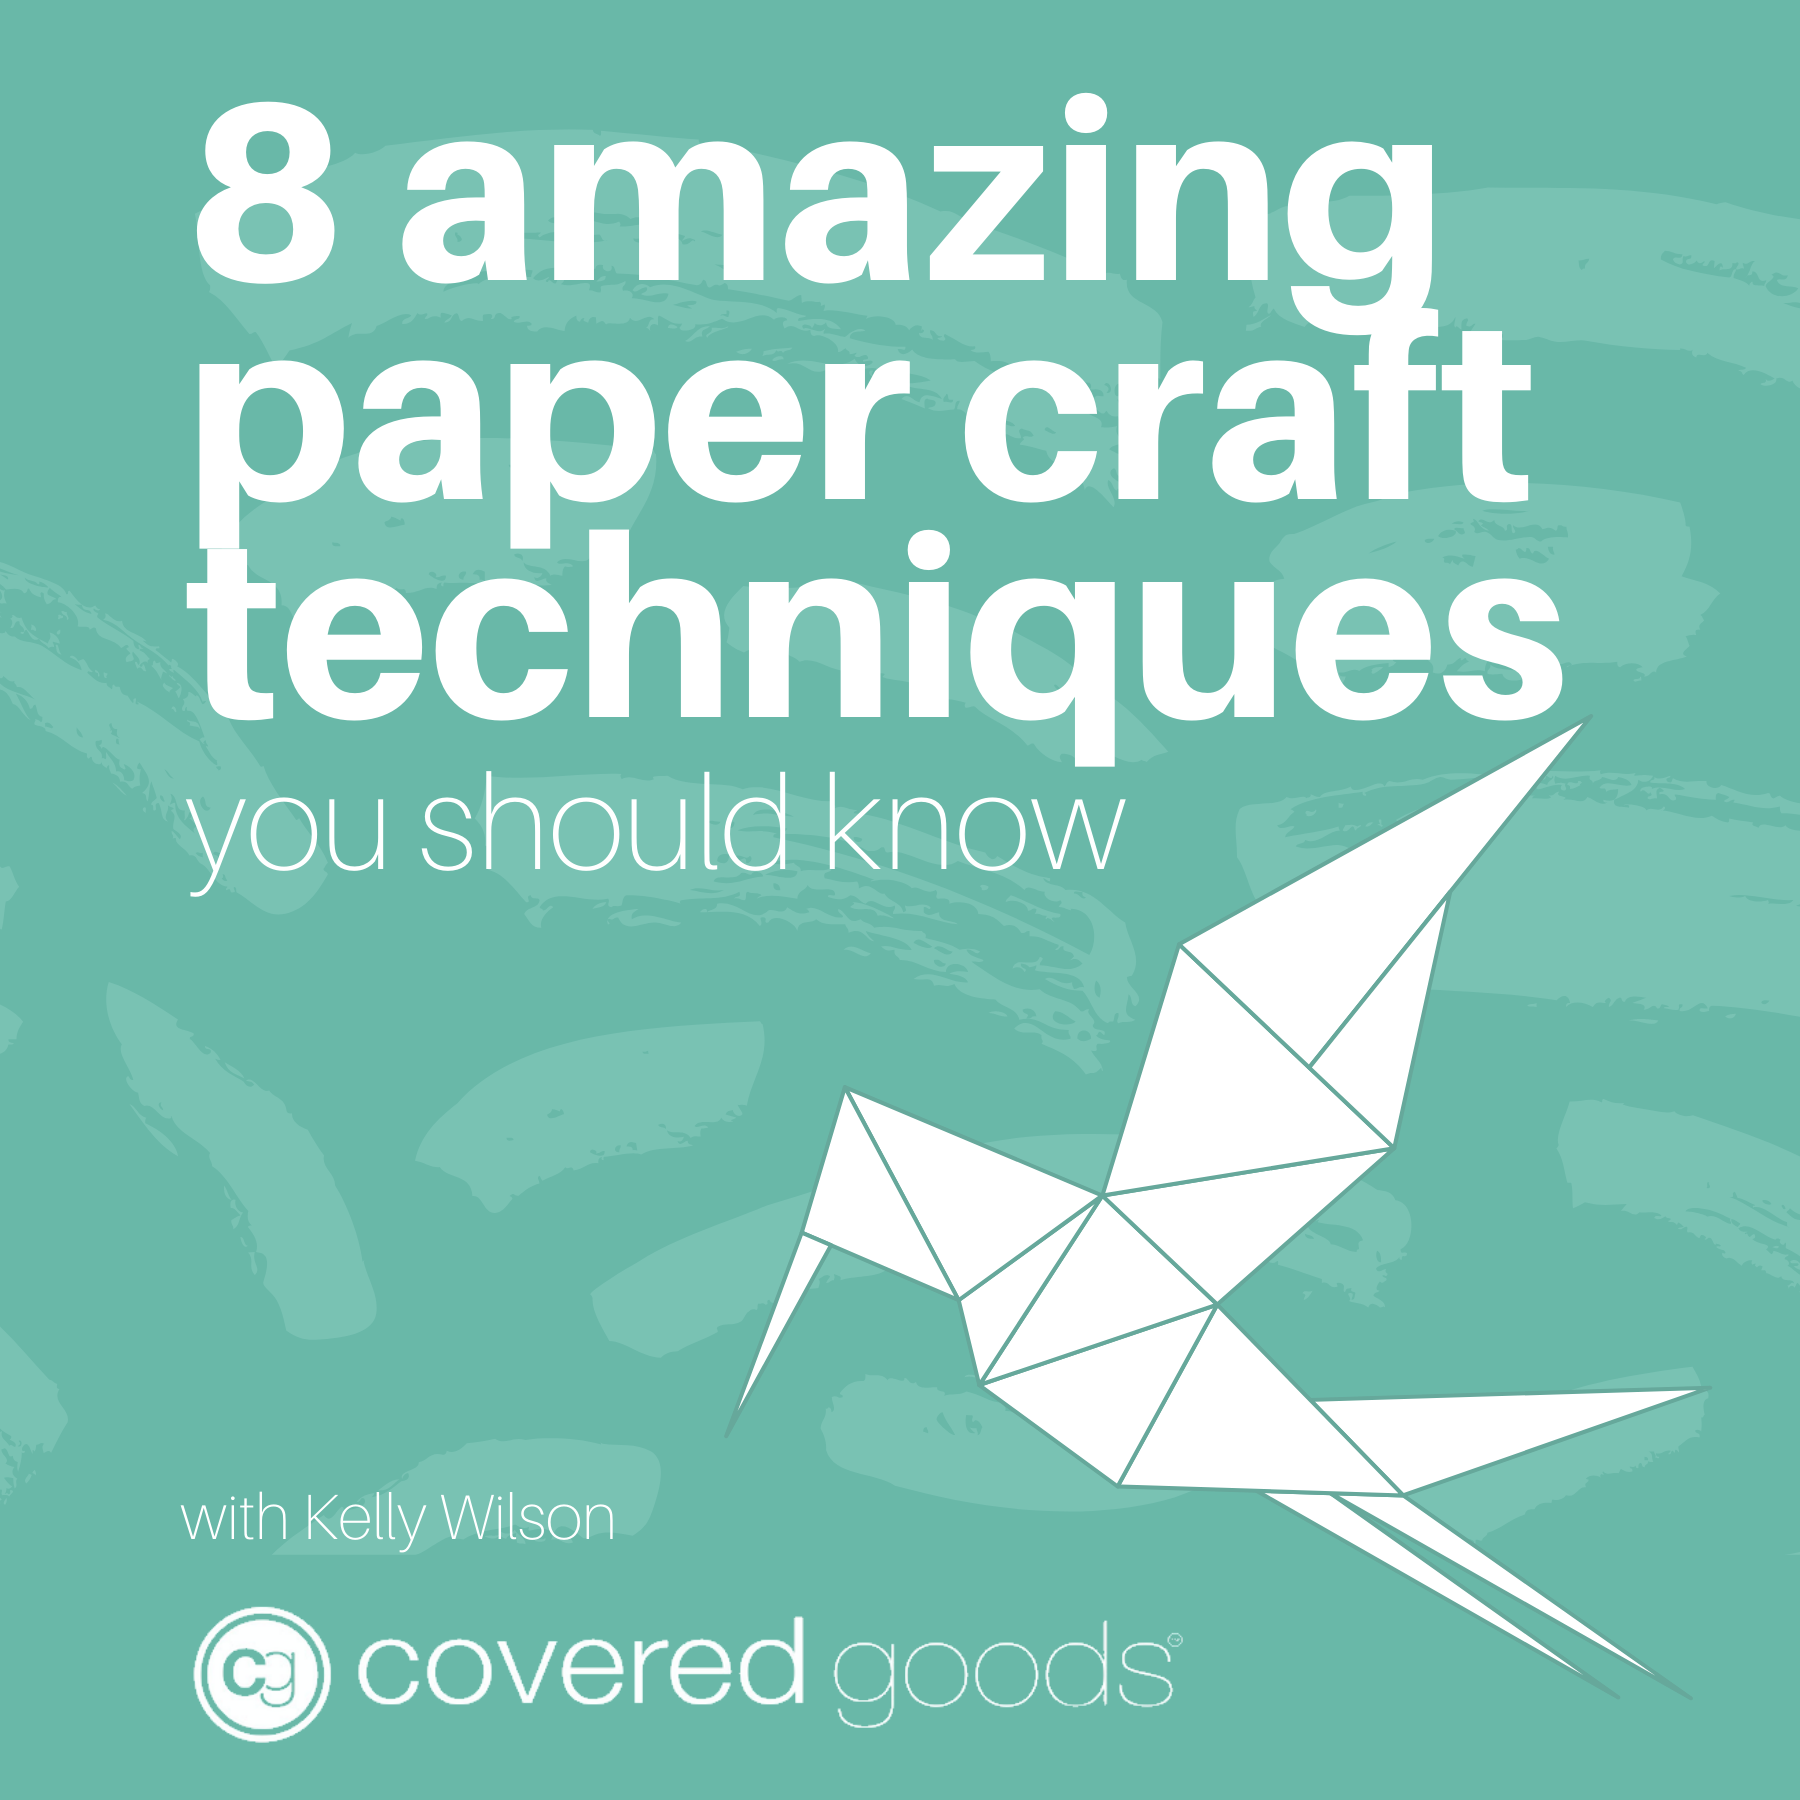 8 Amazing Paper Craft Techniques You Should Know